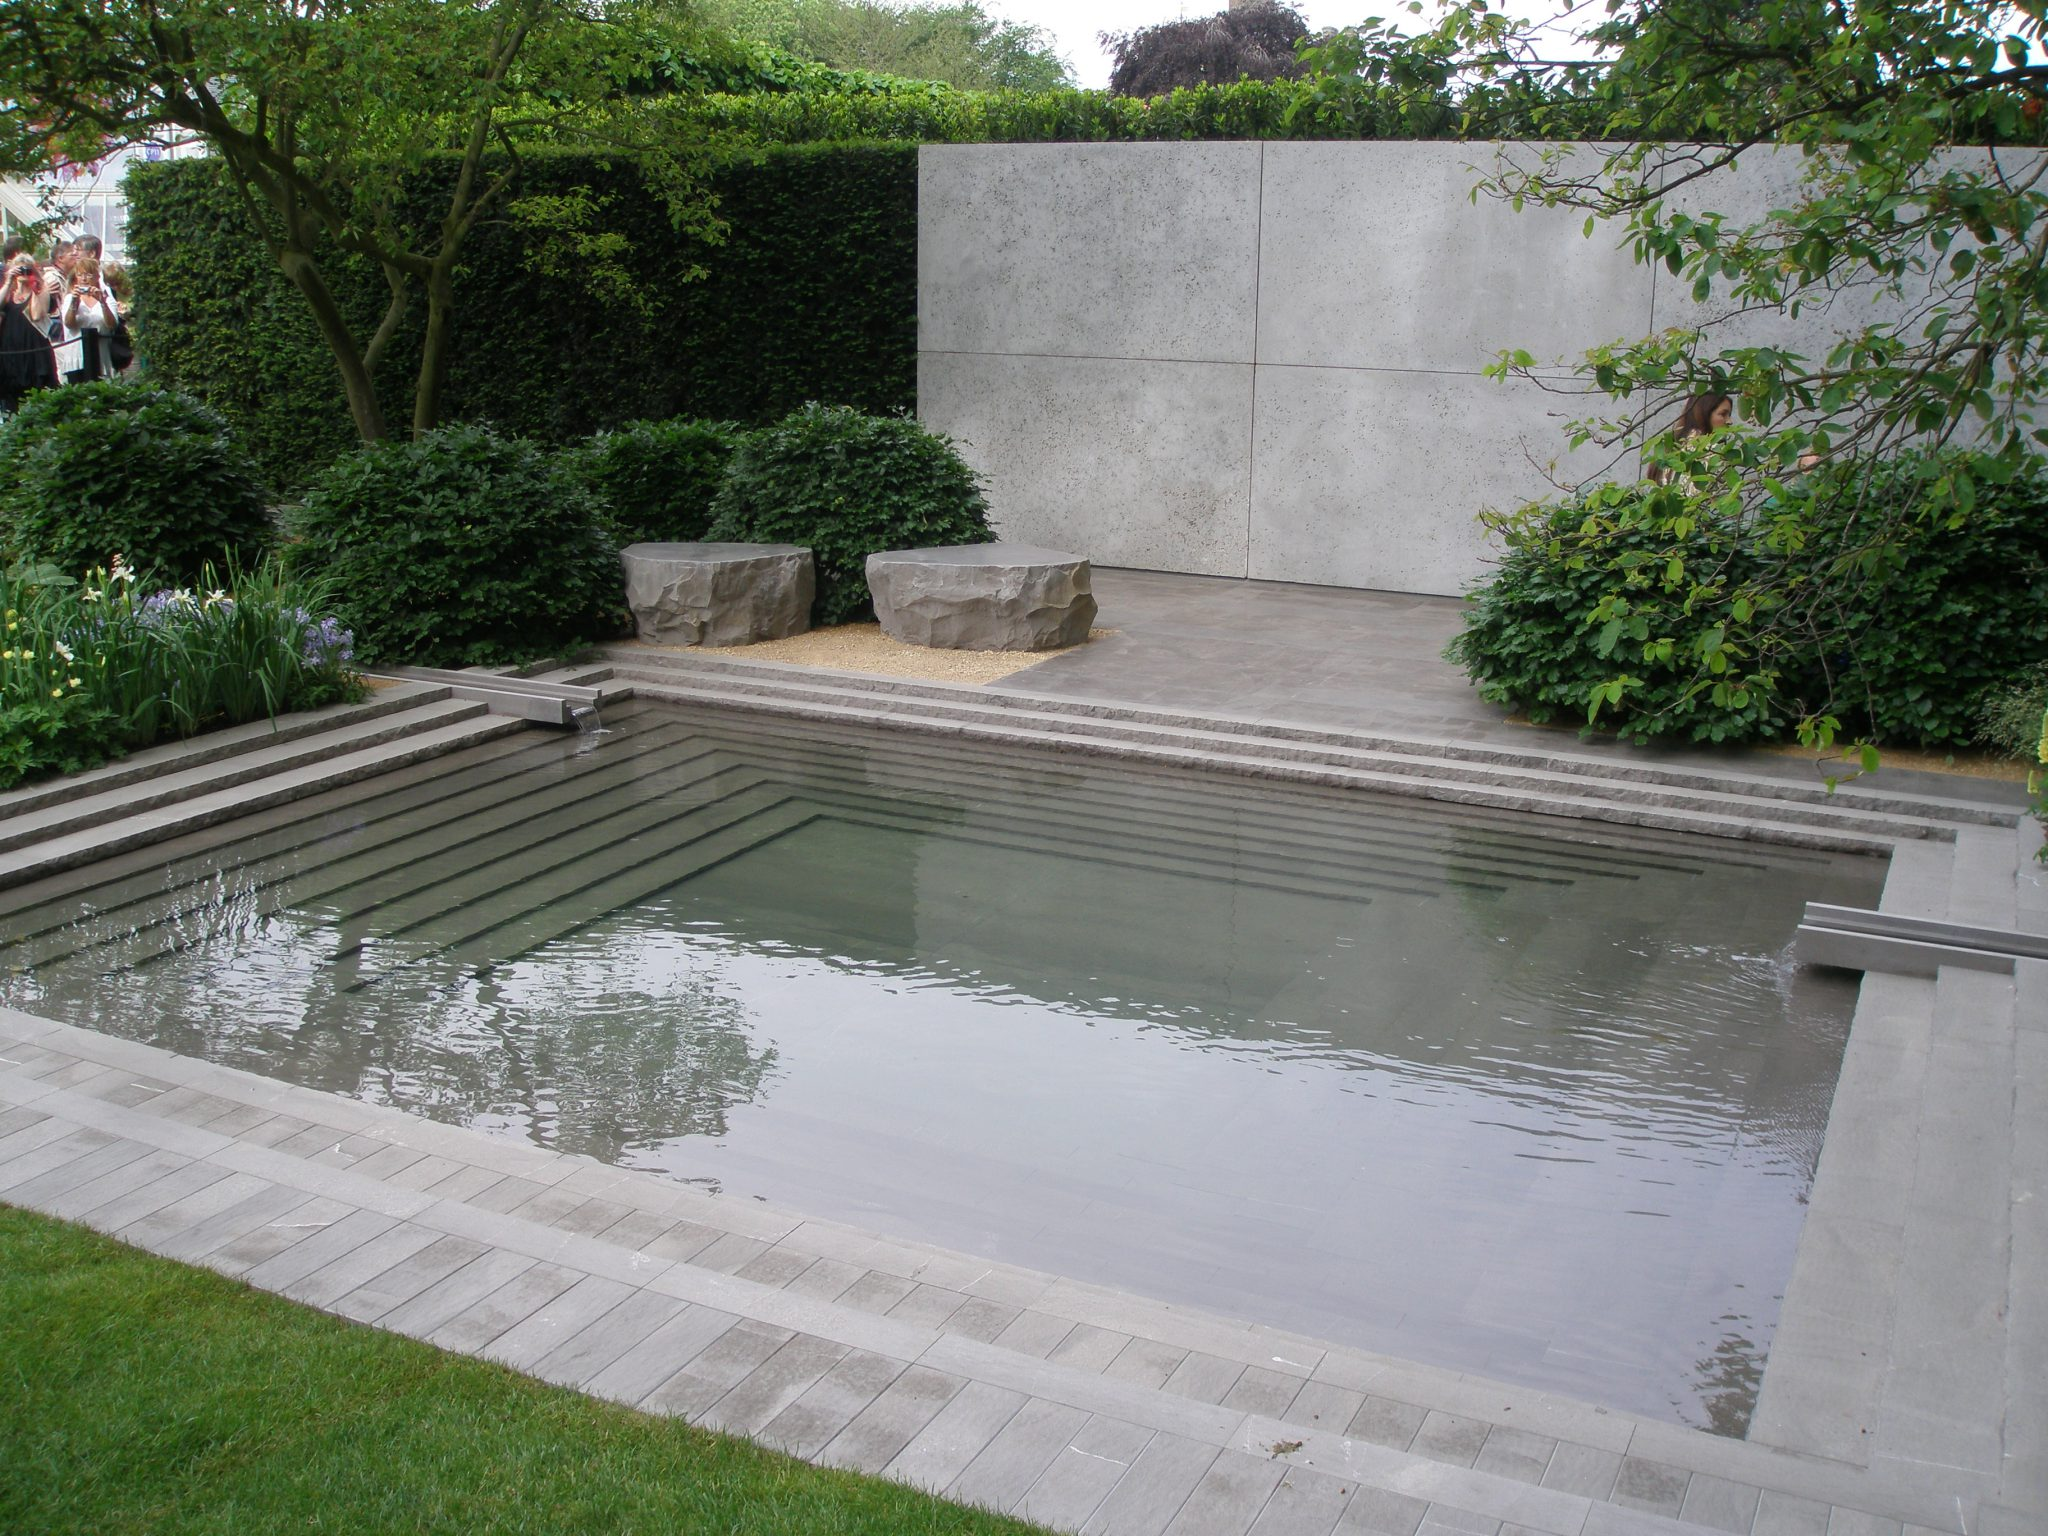 The Laurent-Perrier Garden. Perhaps the stern gray color of the stone here in the pool is what makes me want to keep my distance from this carefully-crafted garden.